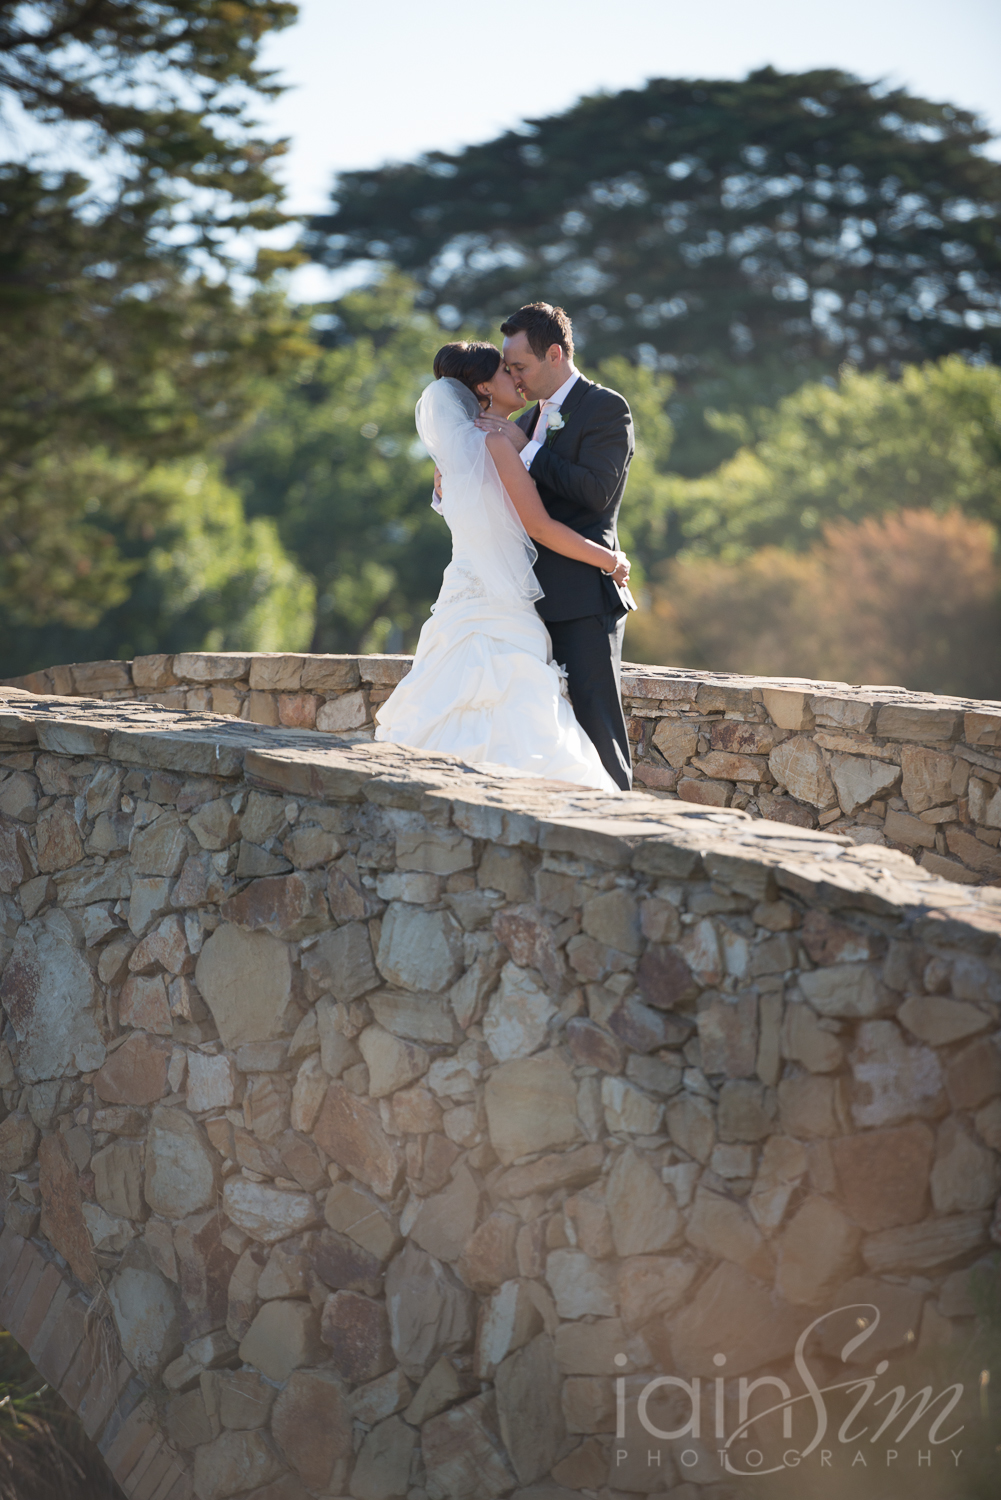 Chris and Aleks at Riversdale Golf Club by Iain Sim Photography